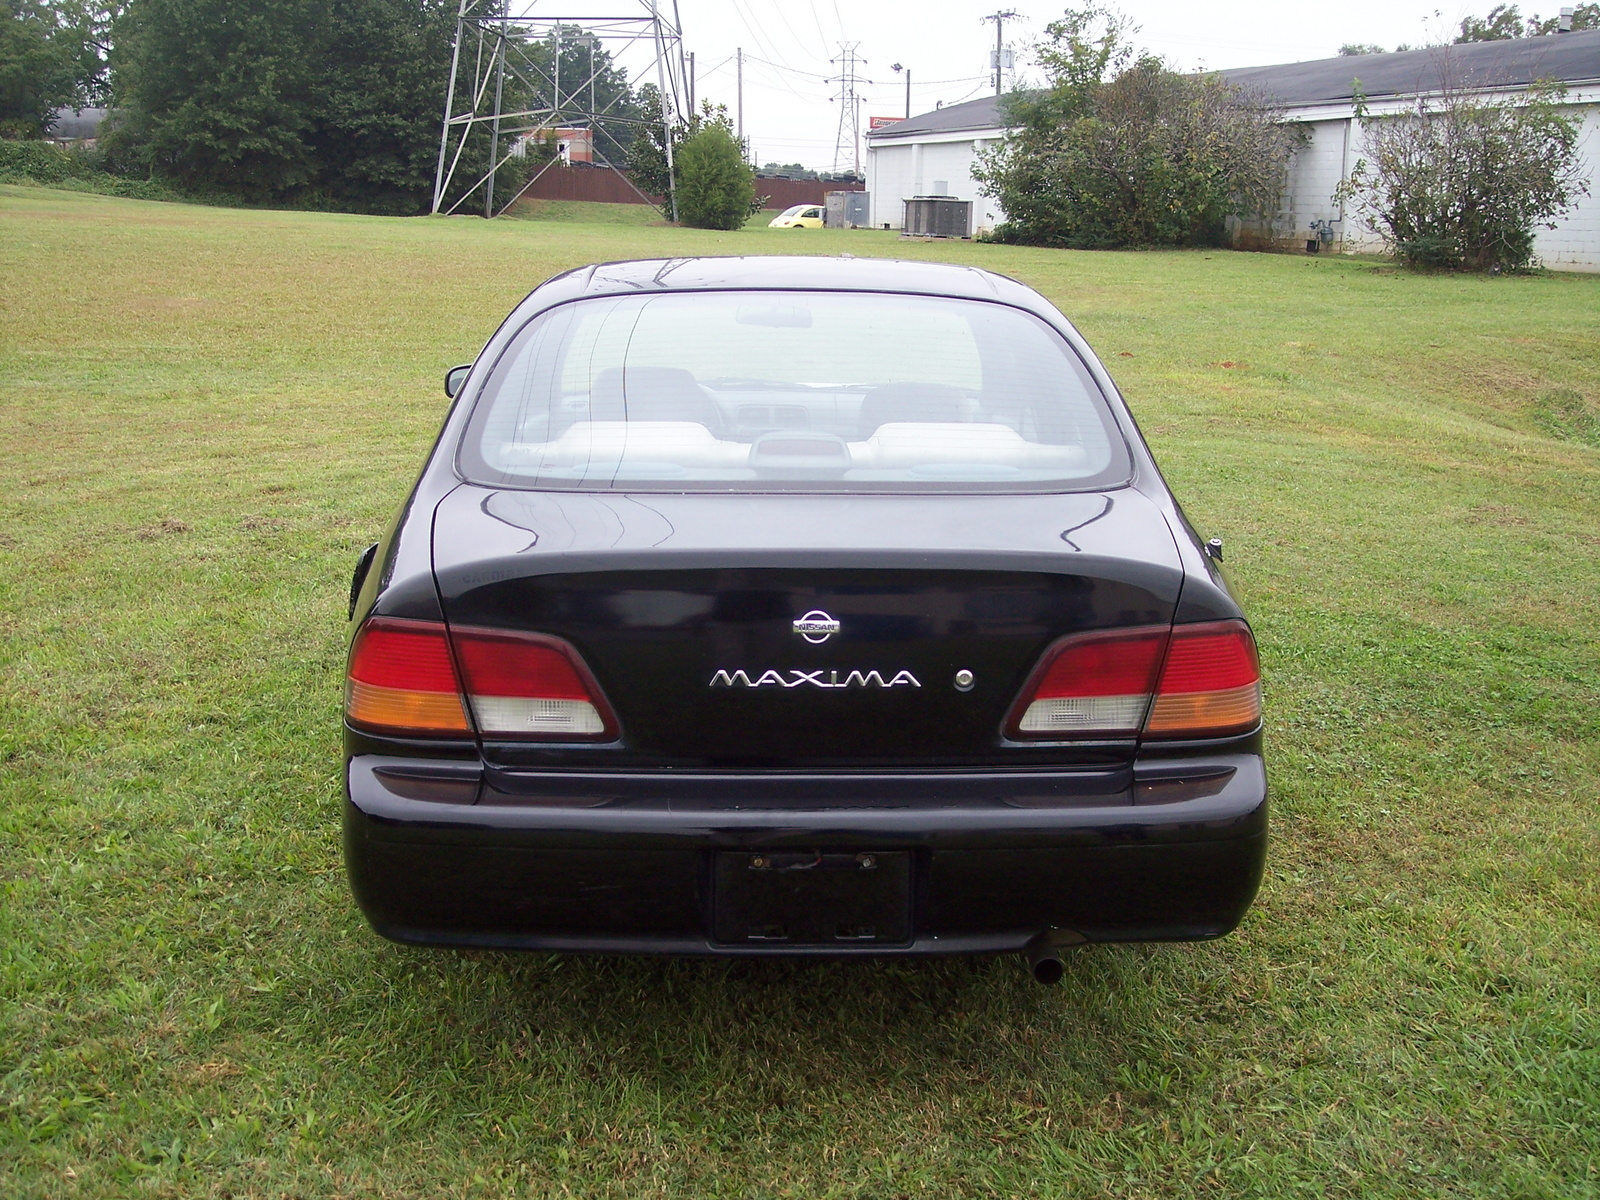 1997 Nissan Maxima - Pictures